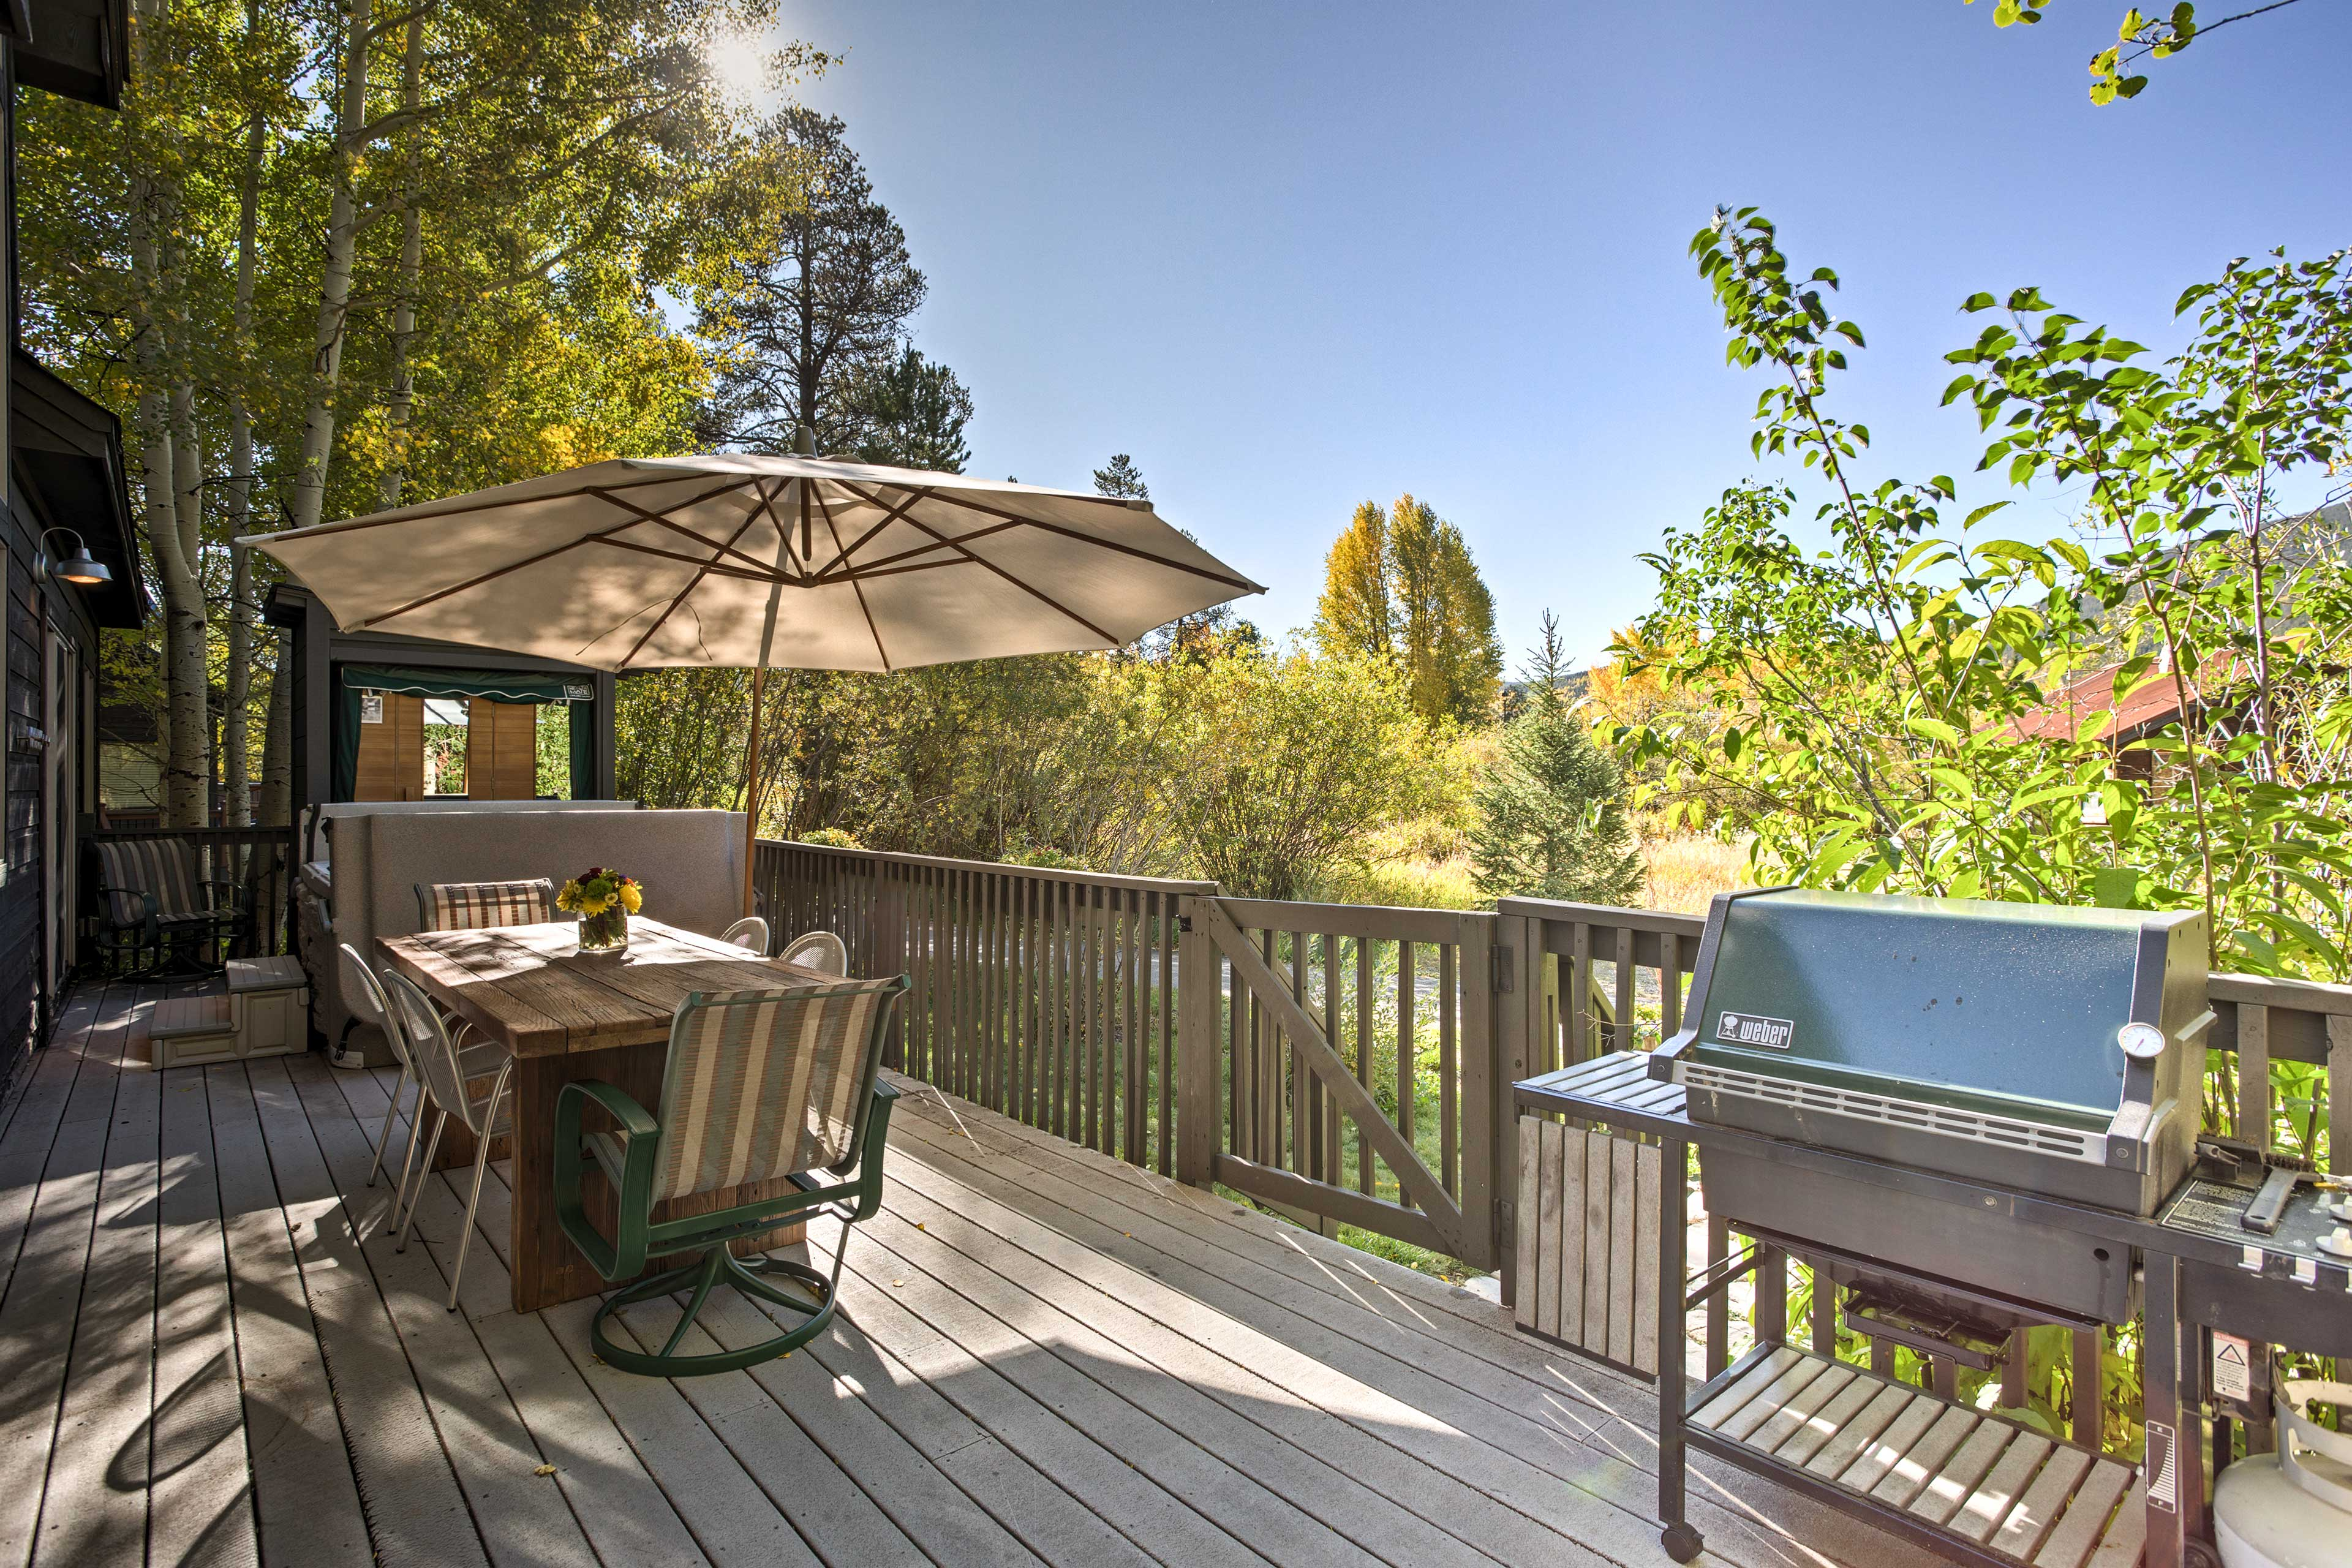 Soak up the sun and take in the mountain views from the deck.